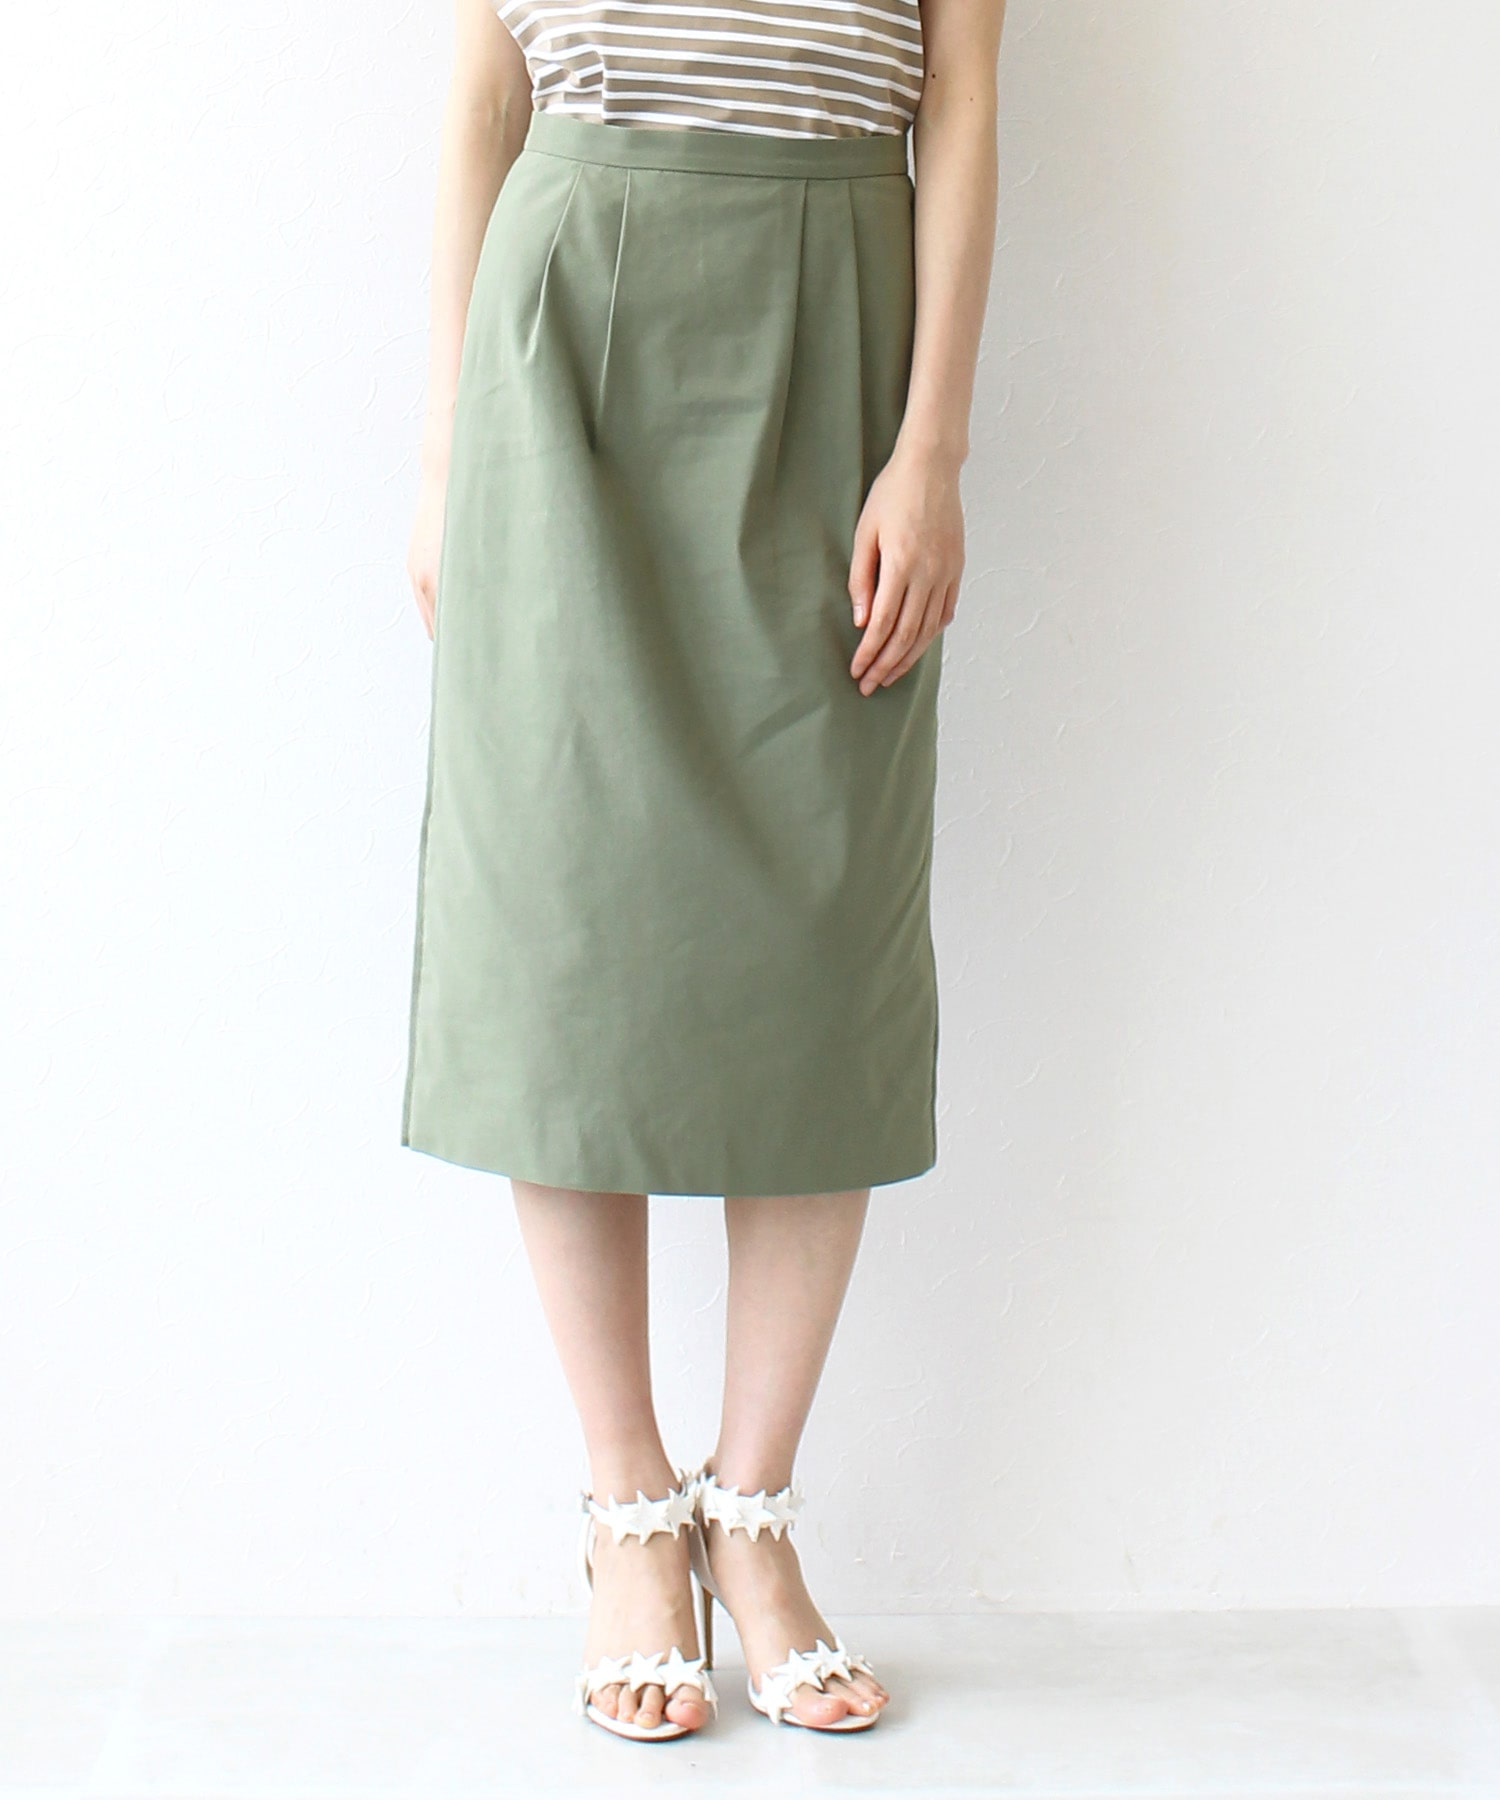 back rush basic tight skirt